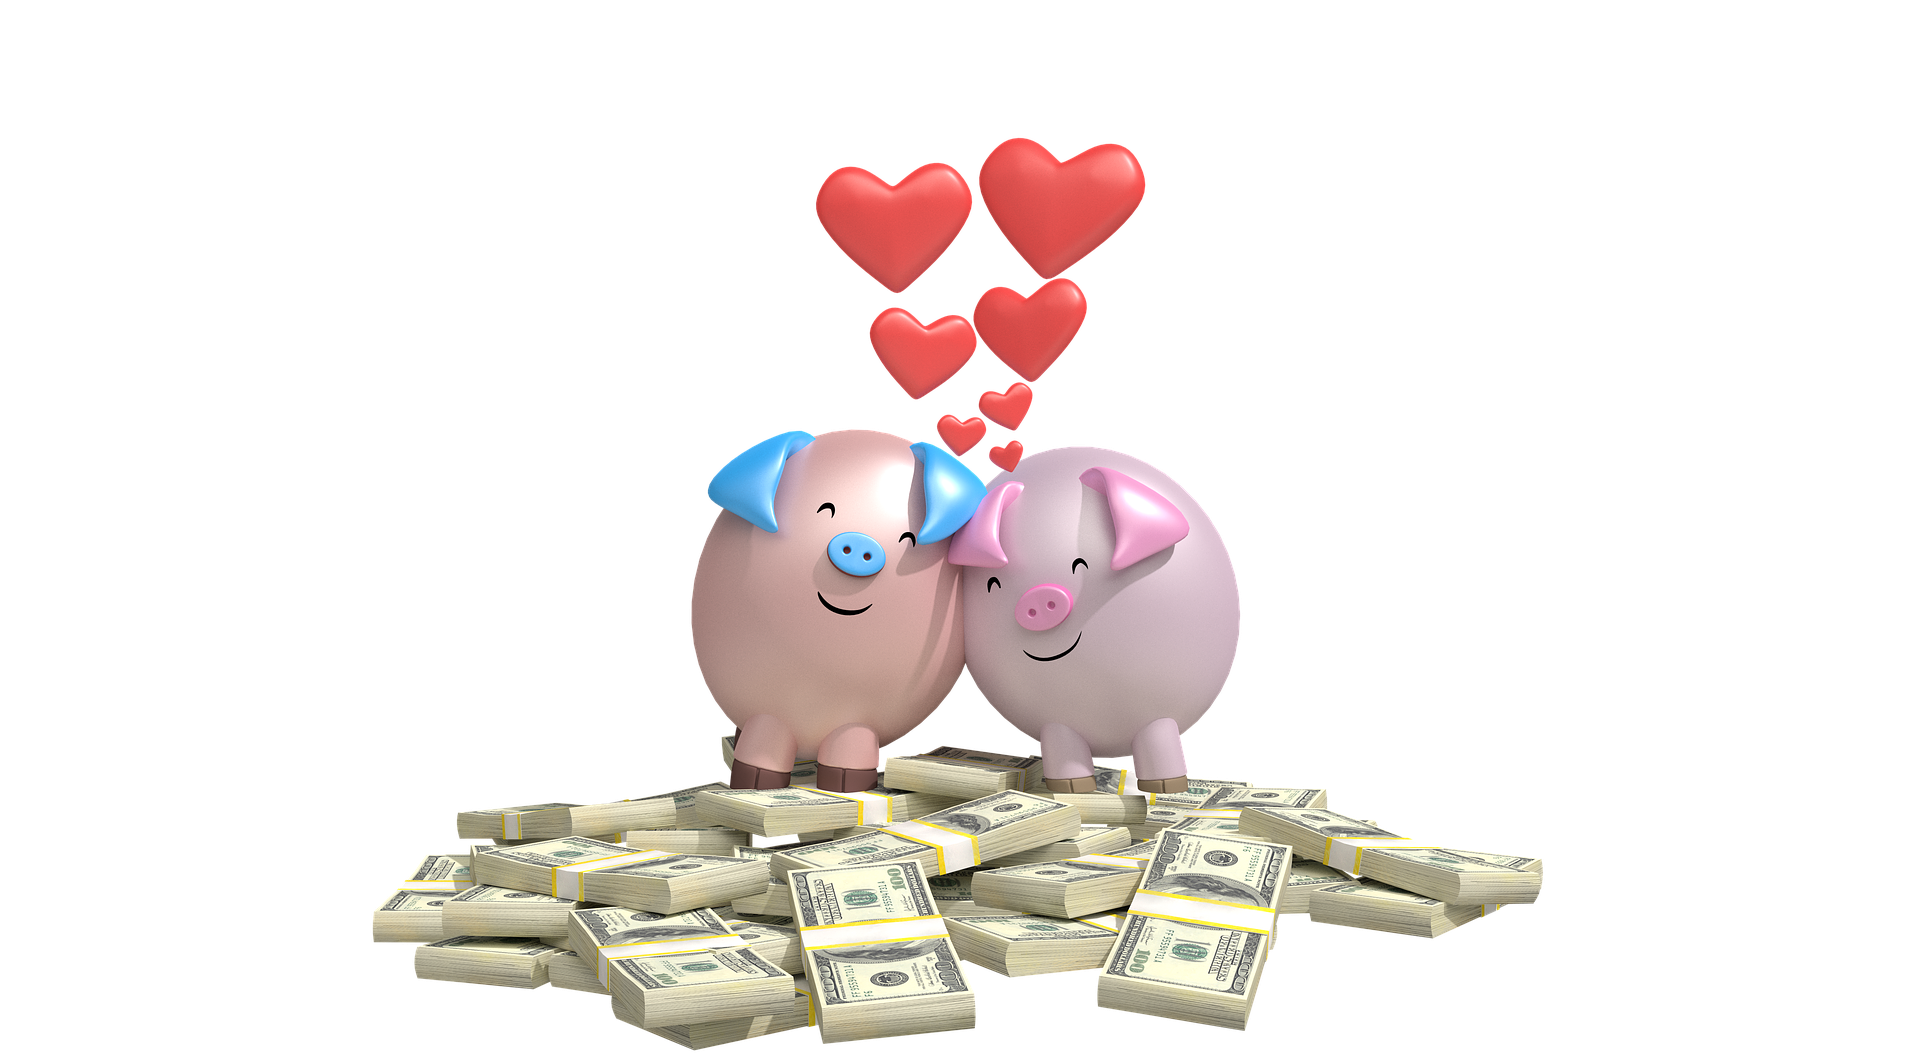 A male and female piggy bank are rubbing against eachother while standing on a pile of cash.